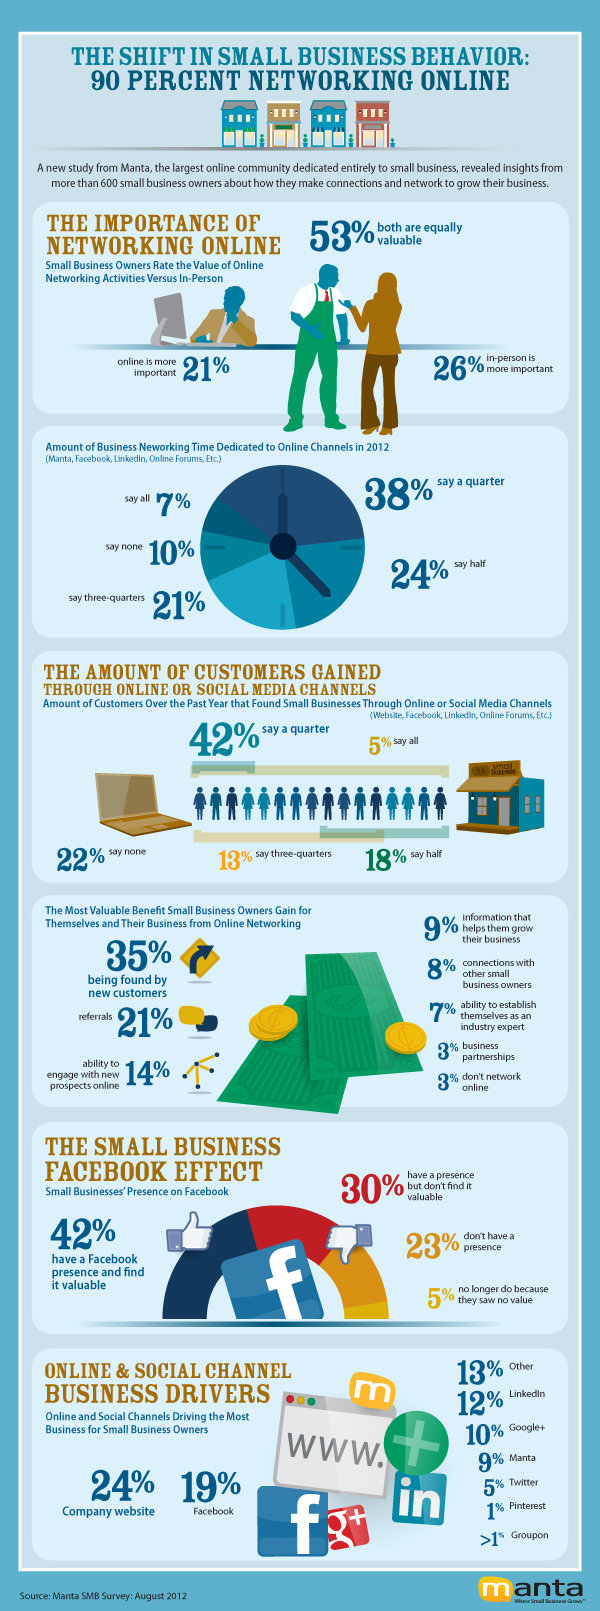 The shift in small business behavior #infographic